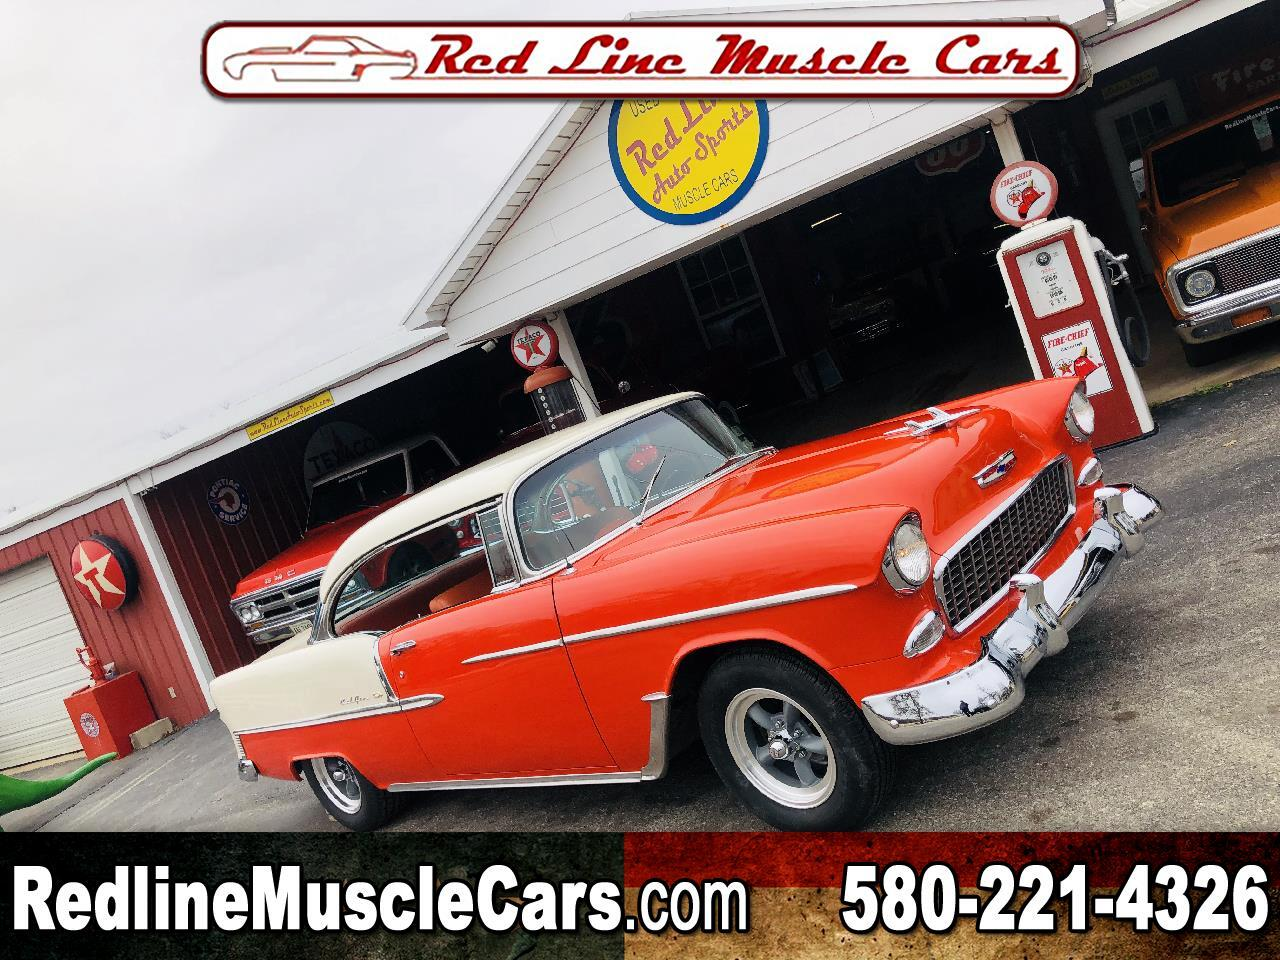 1955 Chevrolet Bel Air 2 door hard top